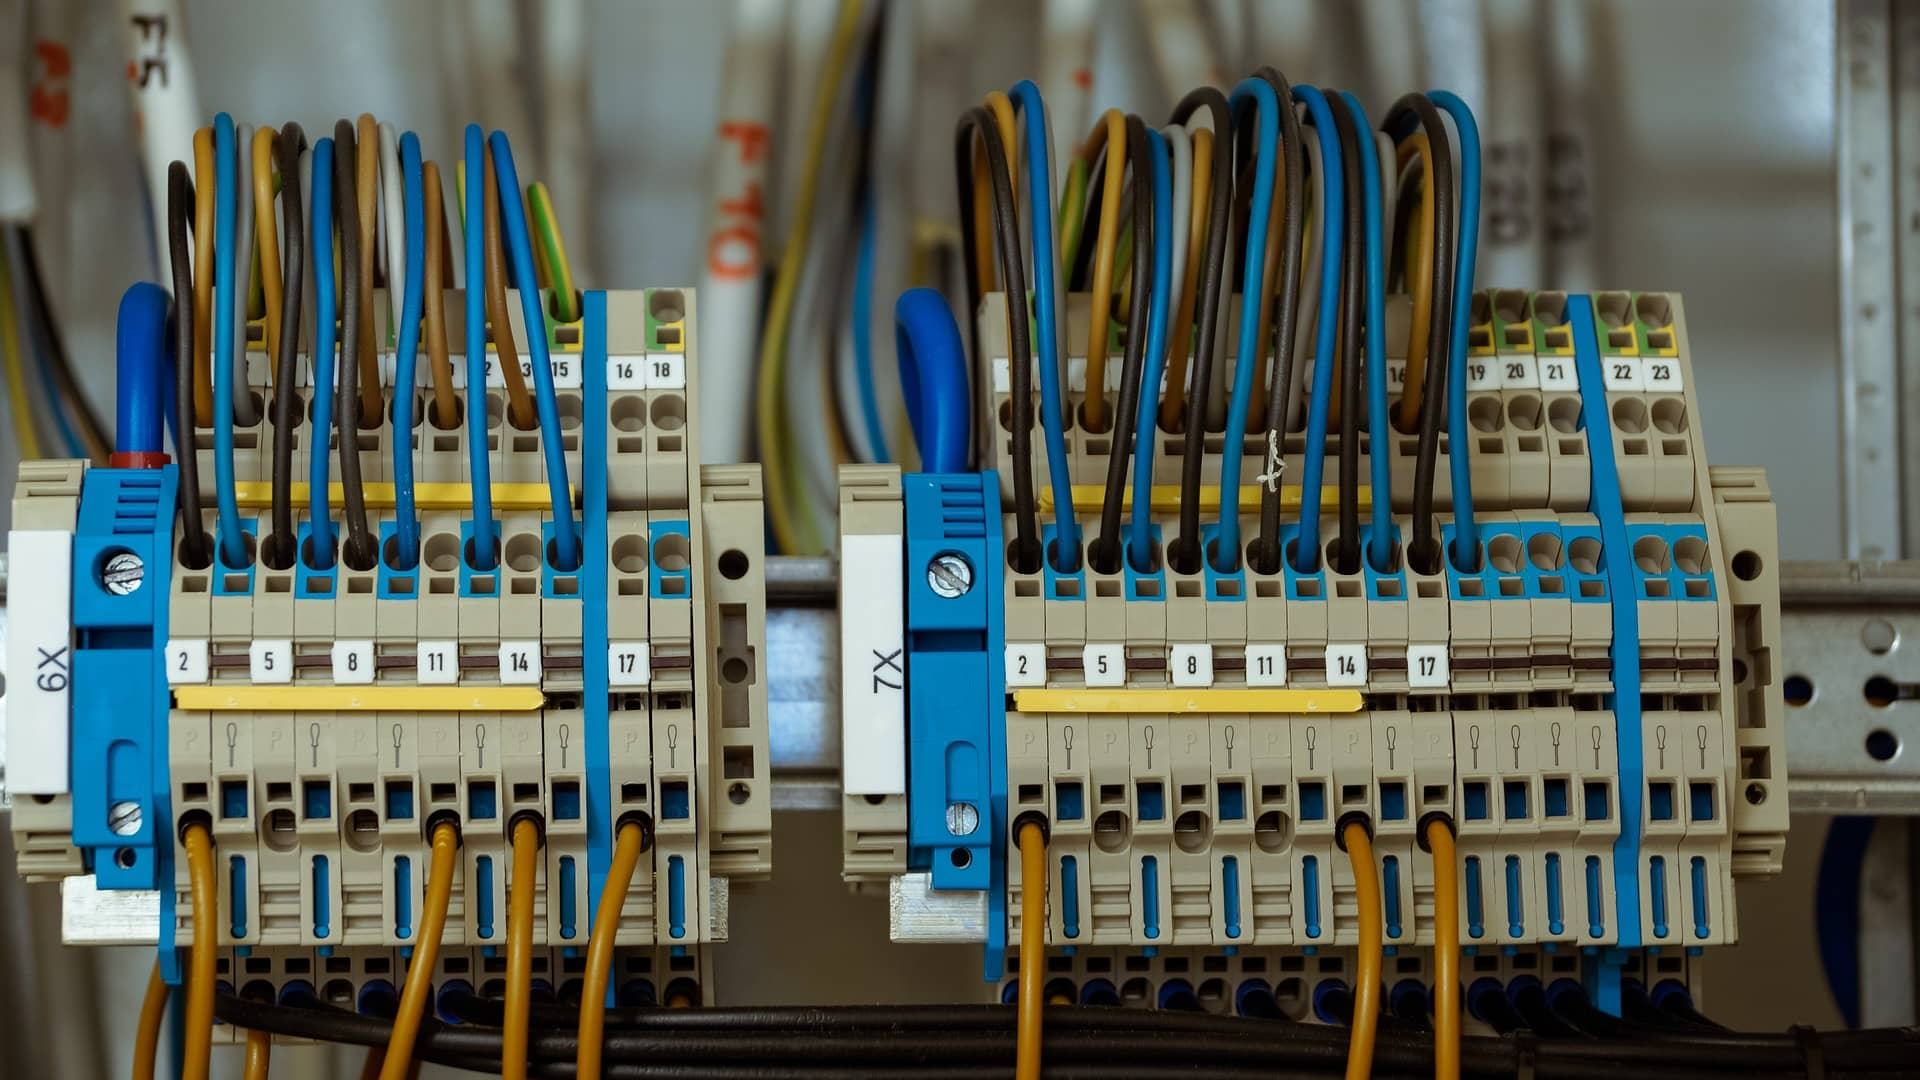 structured cabling - 210it - information technology in san antonio, Wiring diagram